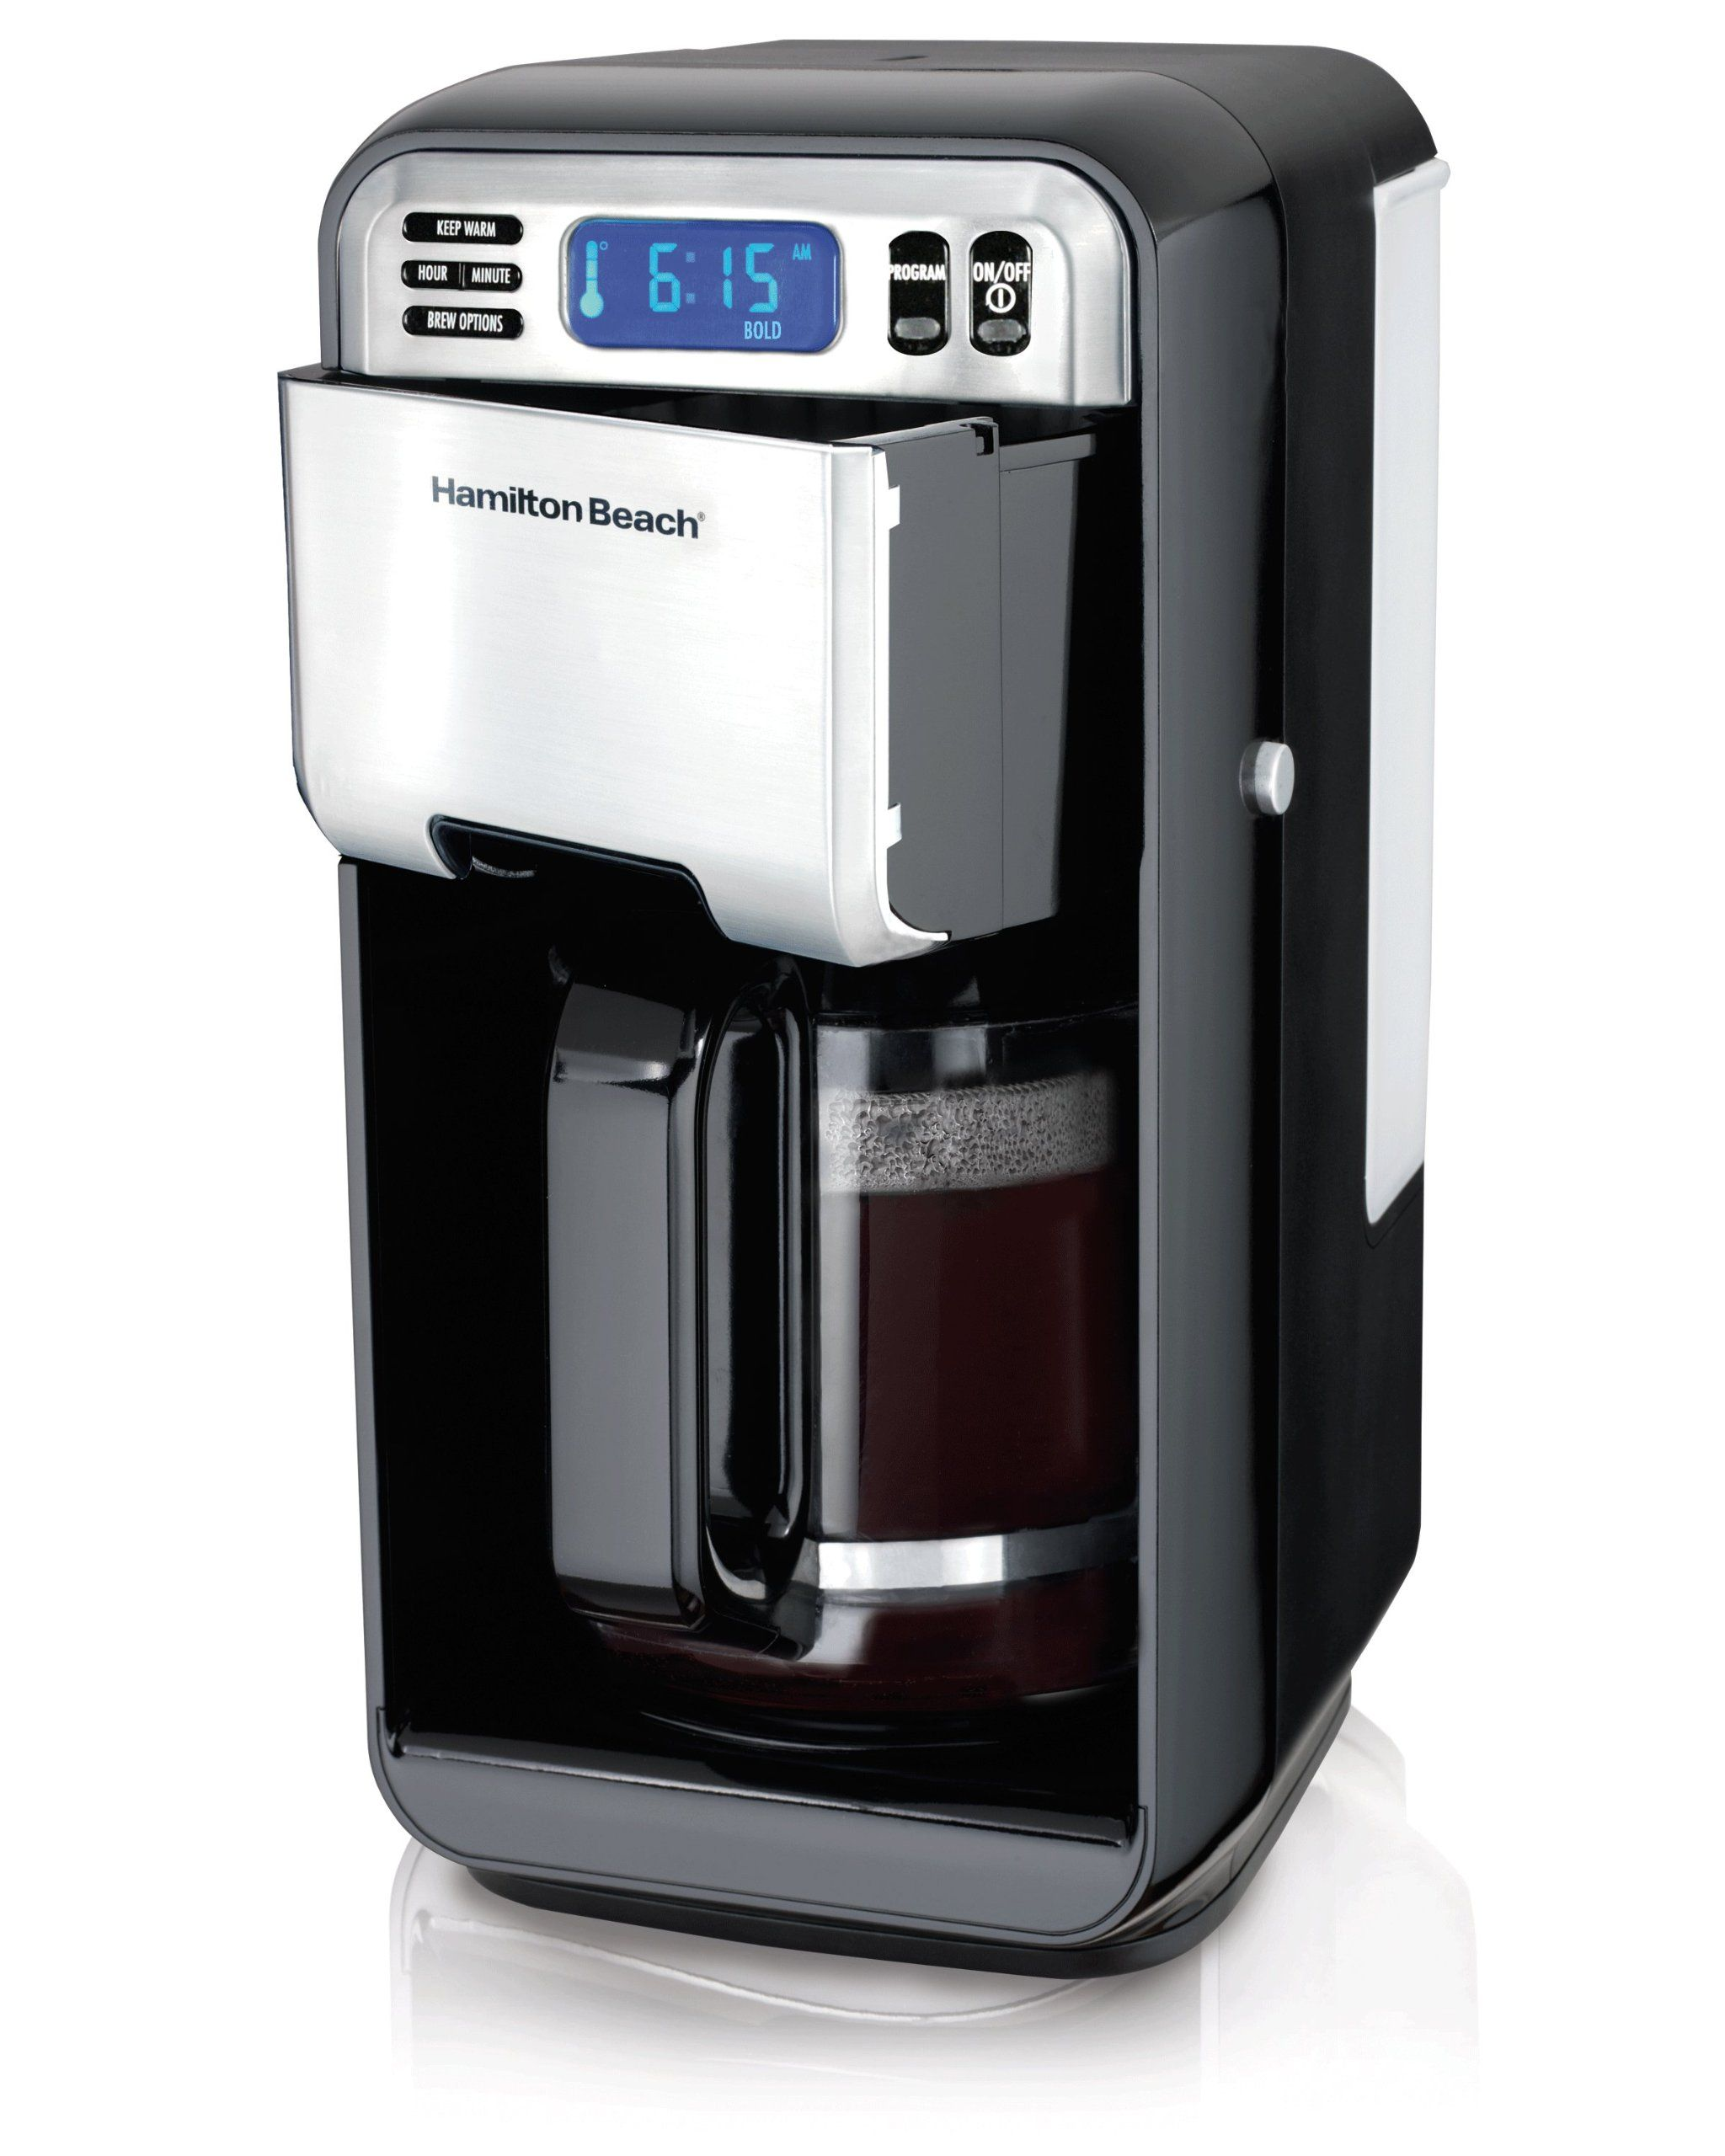 Hamilton Beach 12Cup Digital Coffee Maker, Stainless